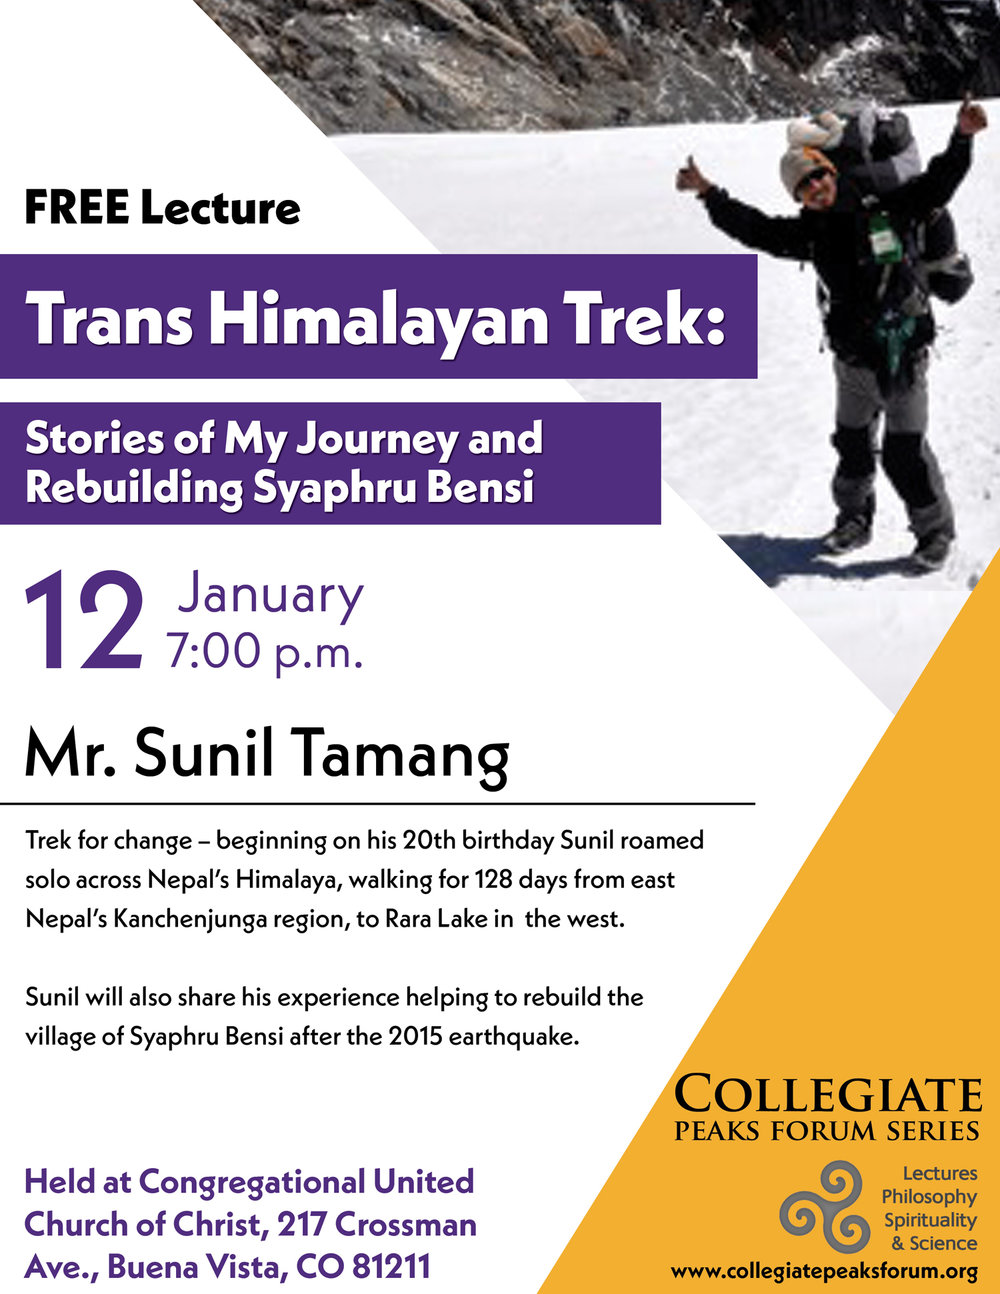 January 12, 2017 Mr. Sunil Tamang